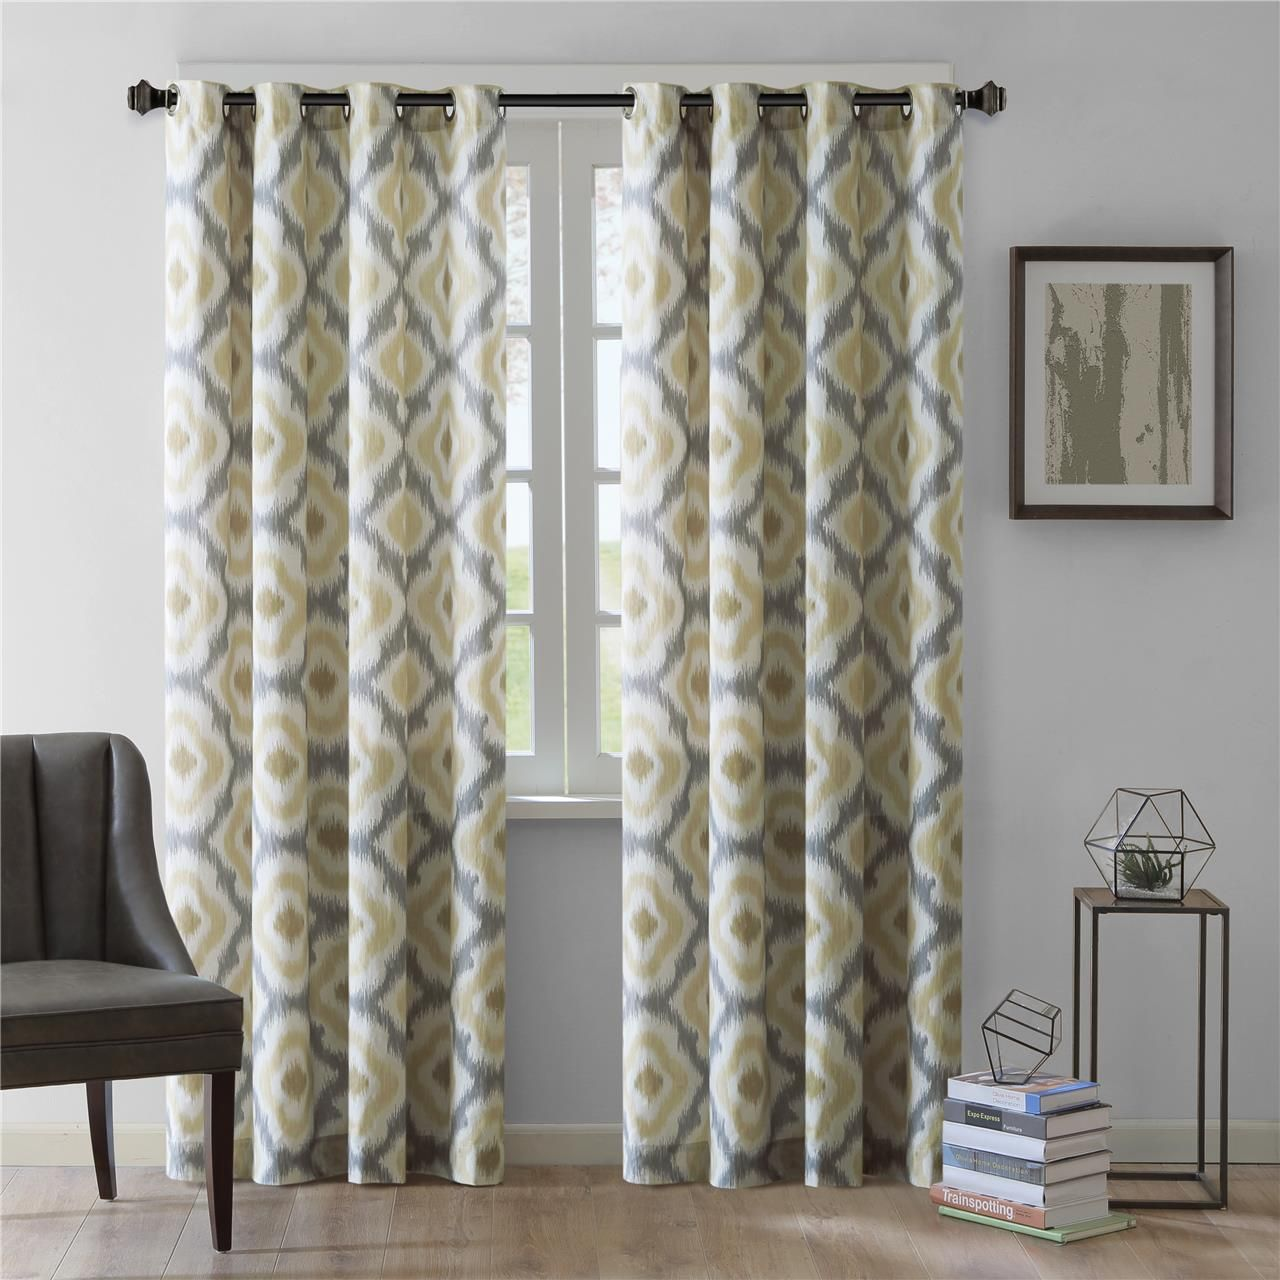 Bed against window with curtains  inkivy ankara window curtaindesigner living  dream home